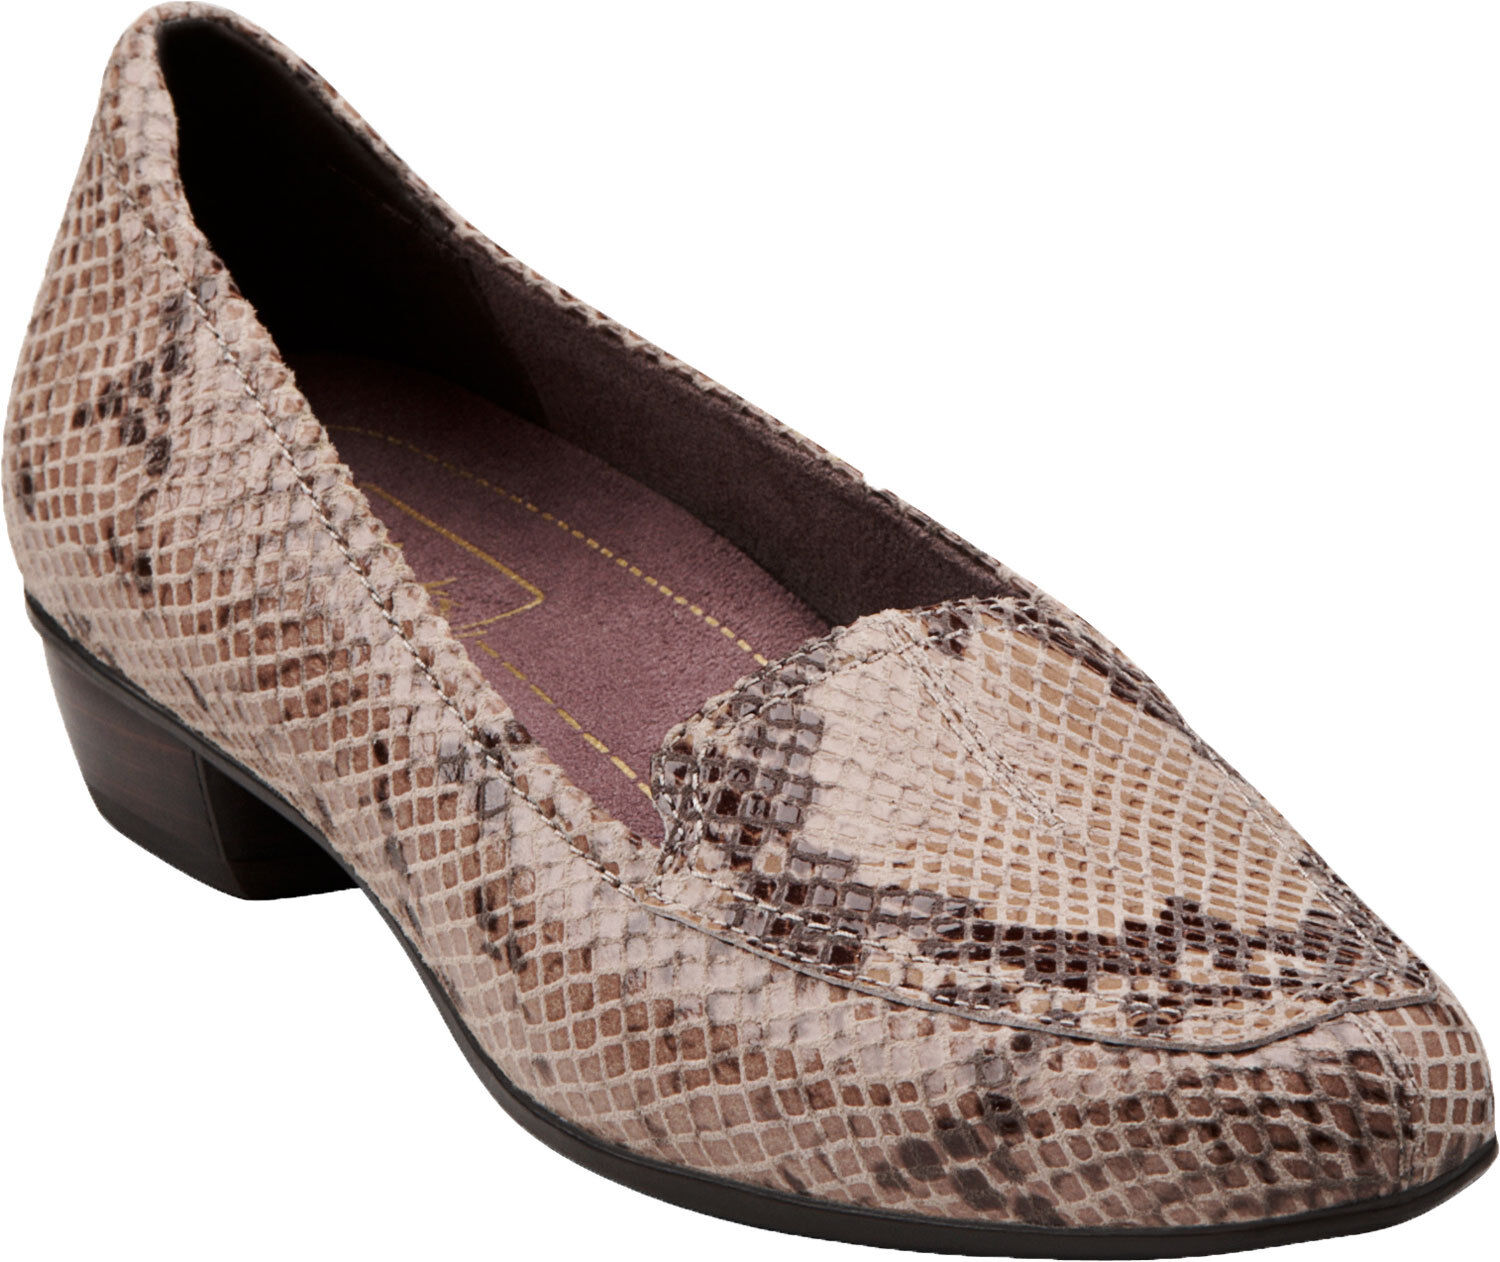 CLARKS TIMELESS SIZE Slip On Dress Loafers SIZE TIMELESS 7 XWide  New In Box 795754